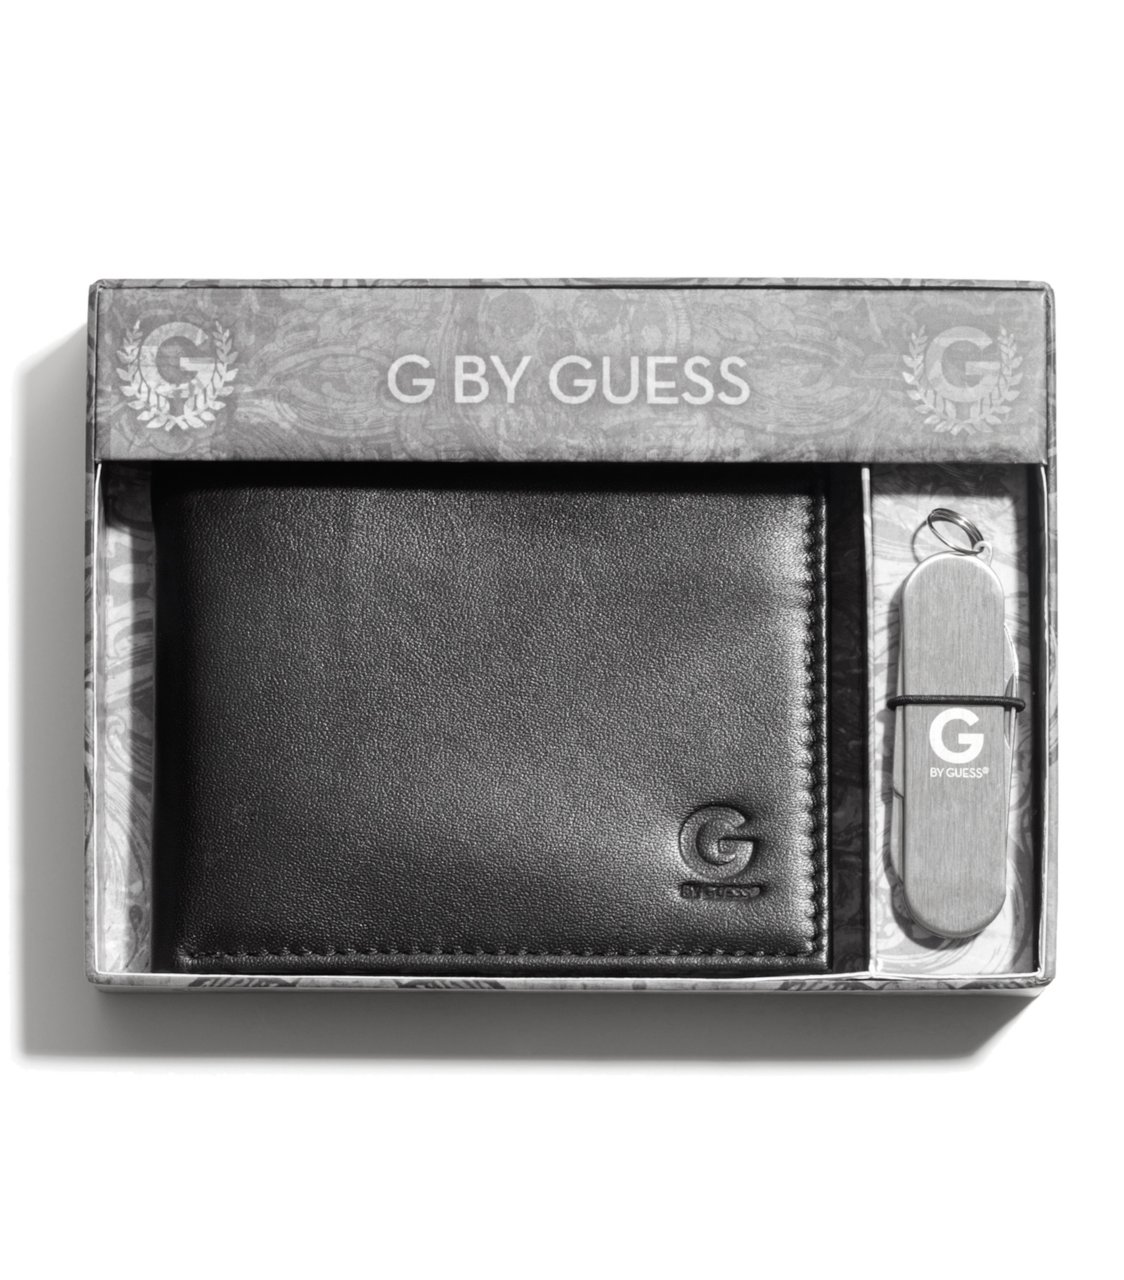 G by GUESS Gift Set With Pocket Knife, BLACK